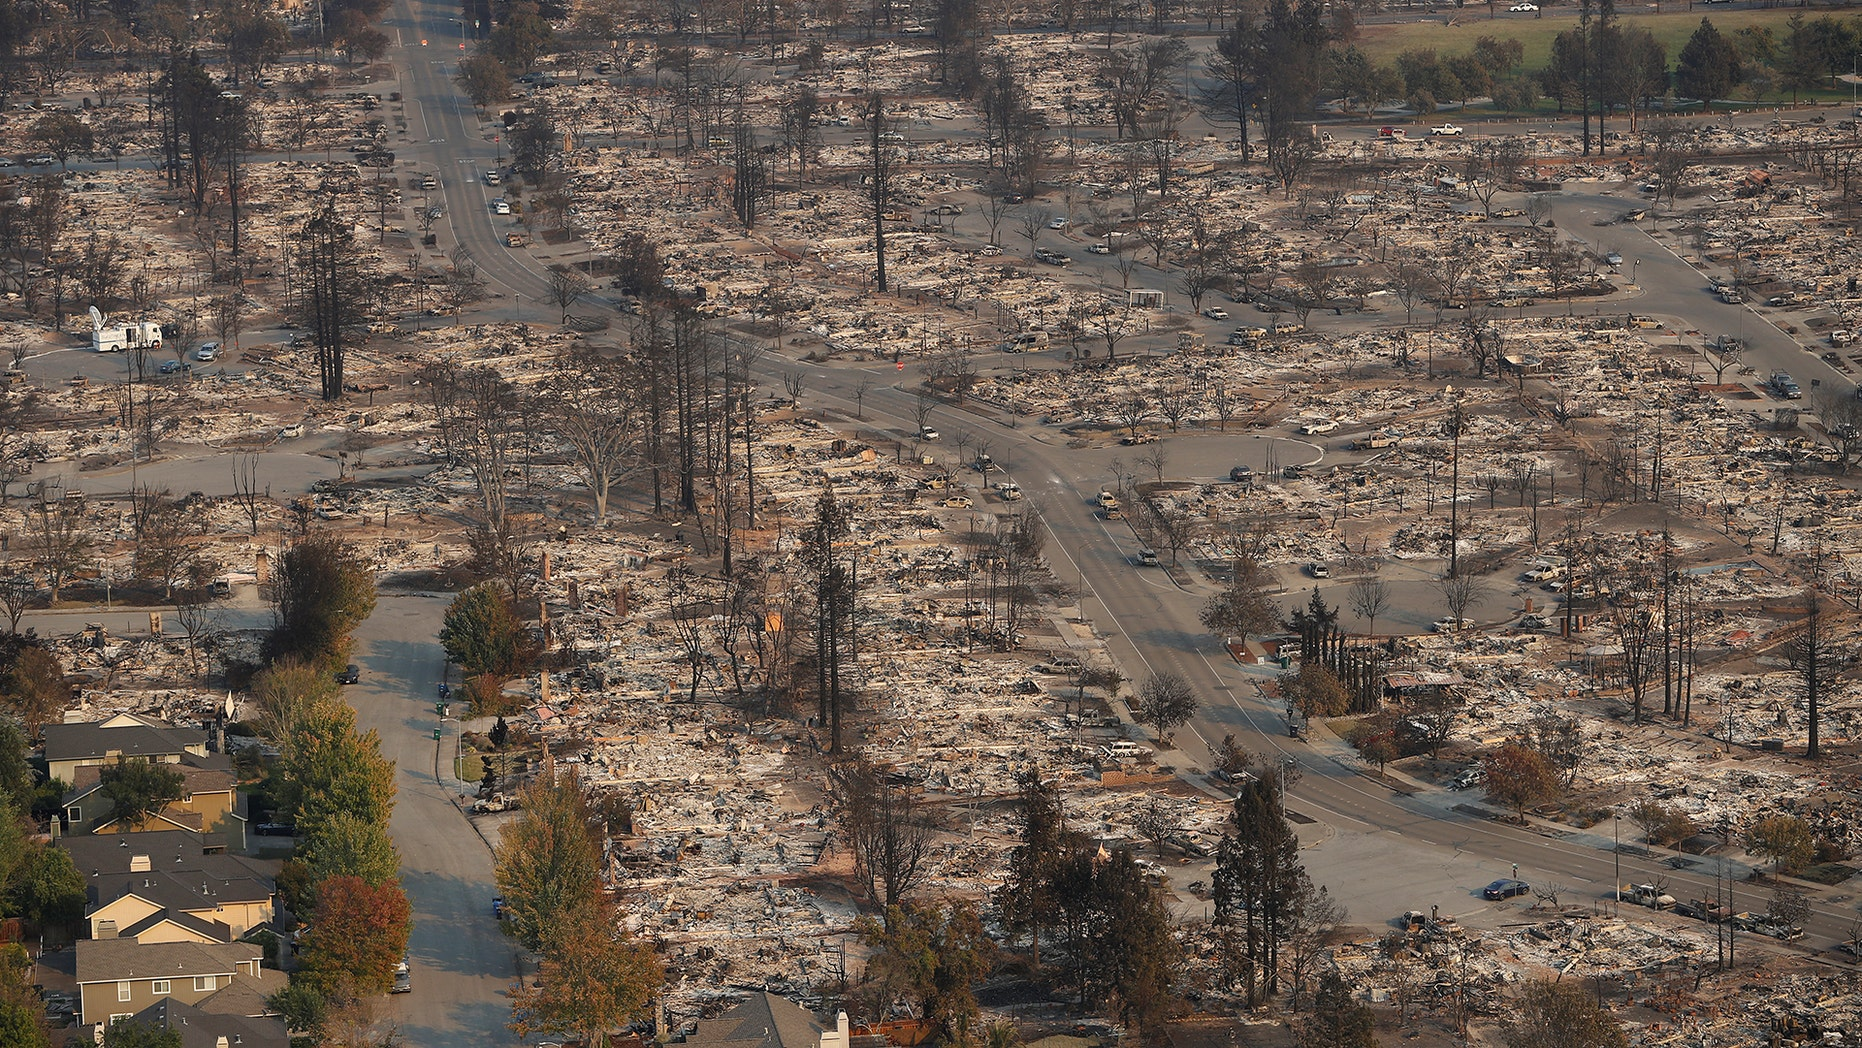 Deadly California fire caused by homeowner equipment